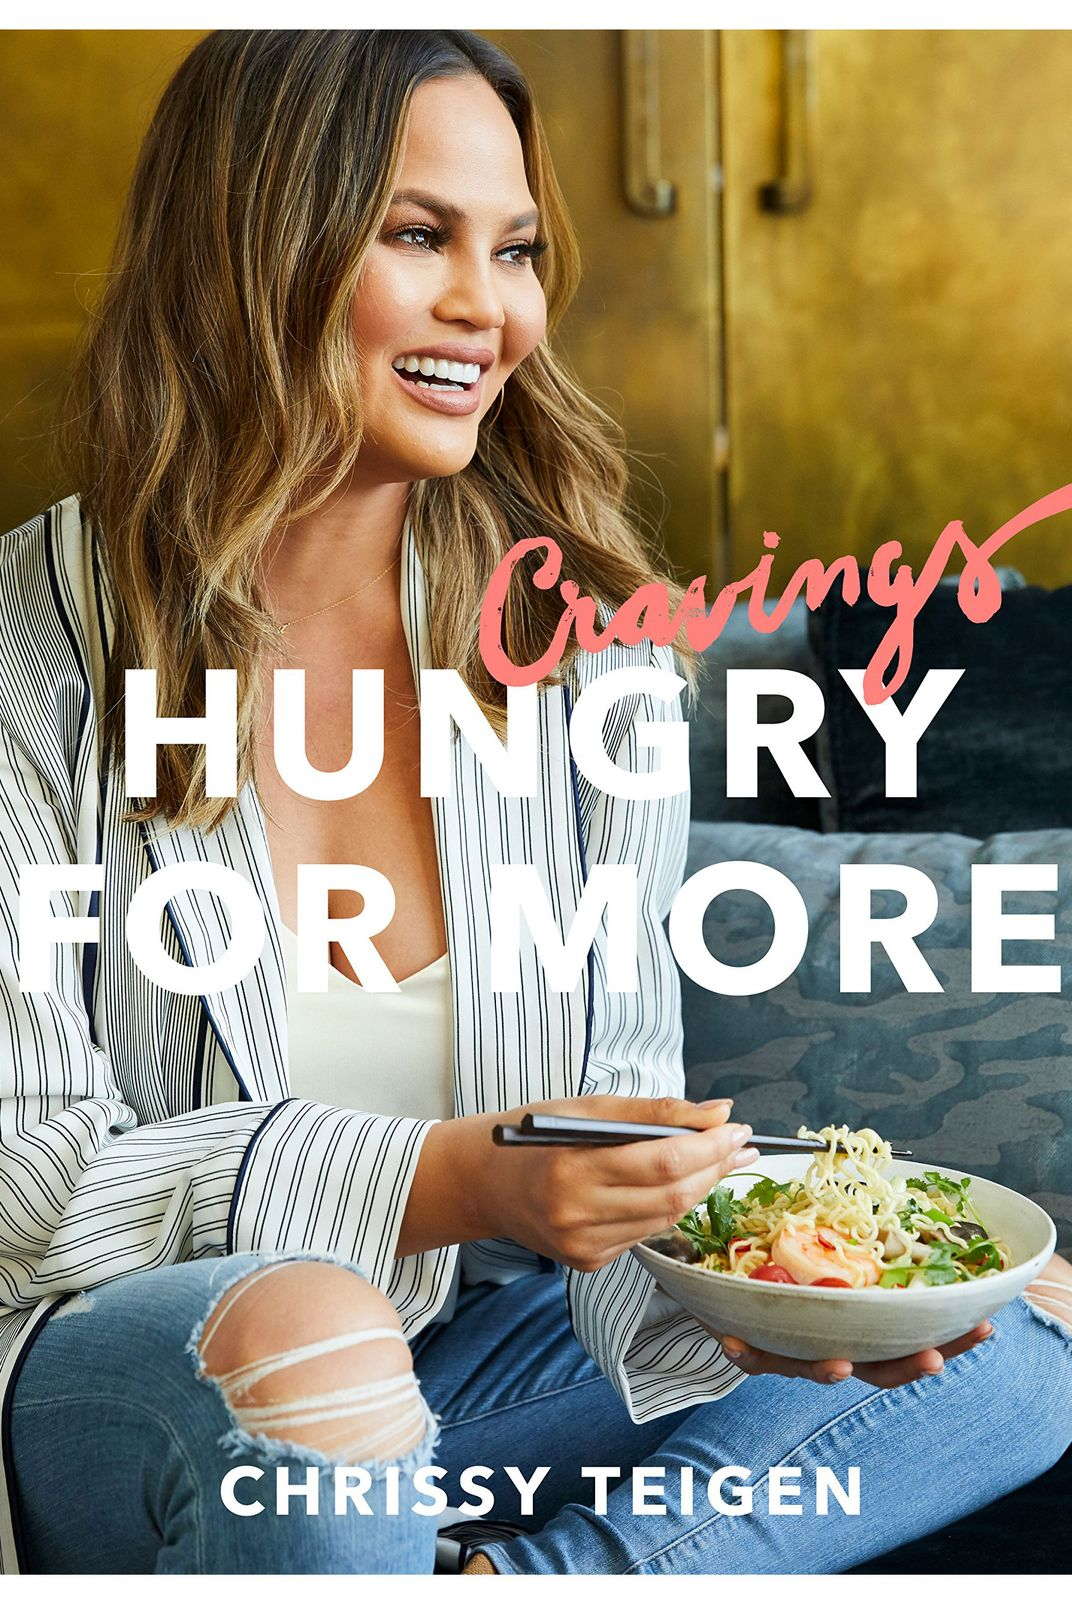 Cravings: Hungry for More, by Chrissy Teigen